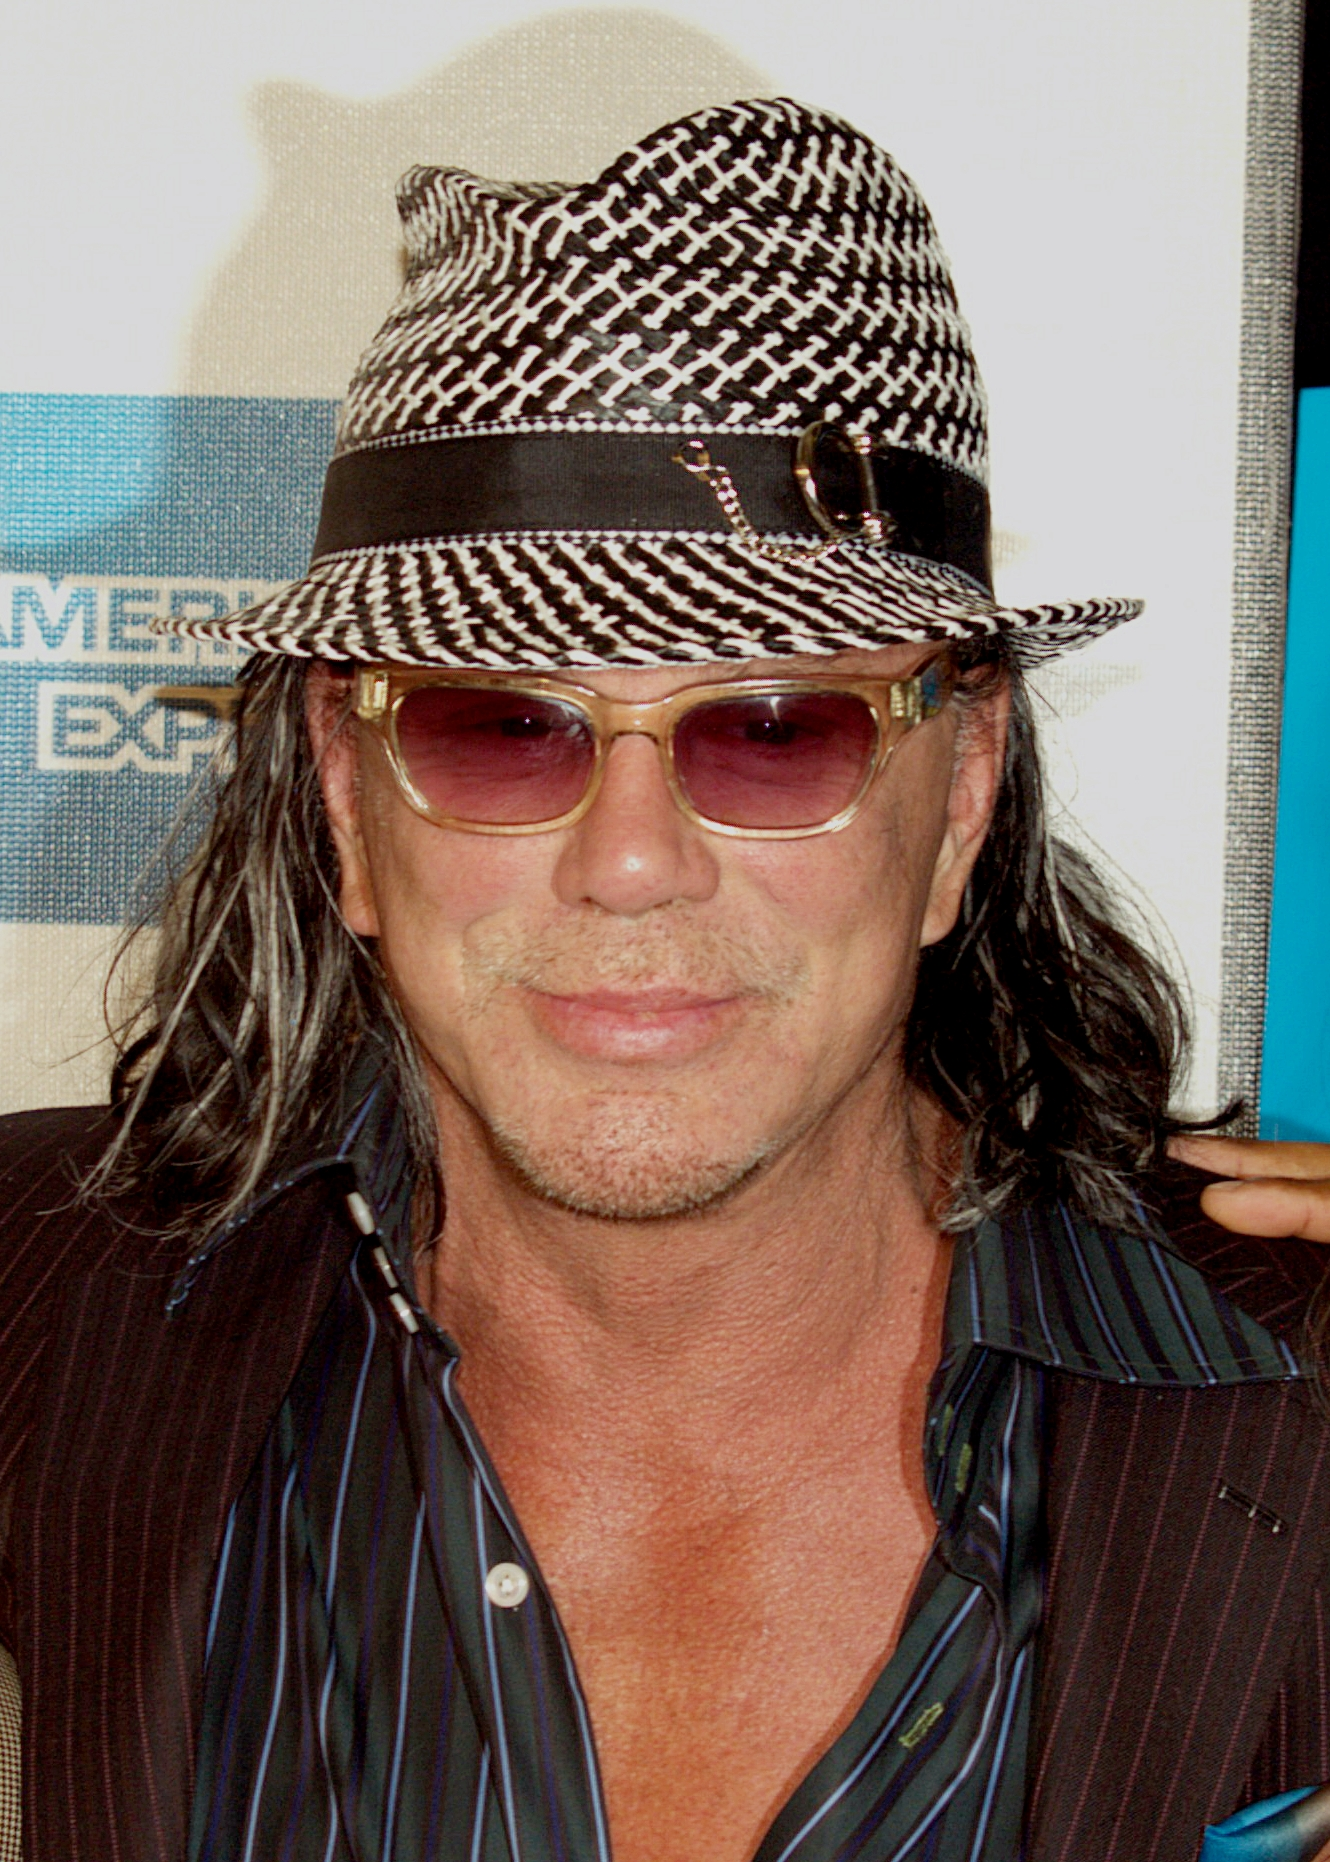 The 65-year old son of father Philip Andre Rourke, Sr. and mother Annette Addis Mickey Rourke in 2018 photo. Mickey Rourke earned a  million dollar salary - leaving the net worth at 10 million in 2018